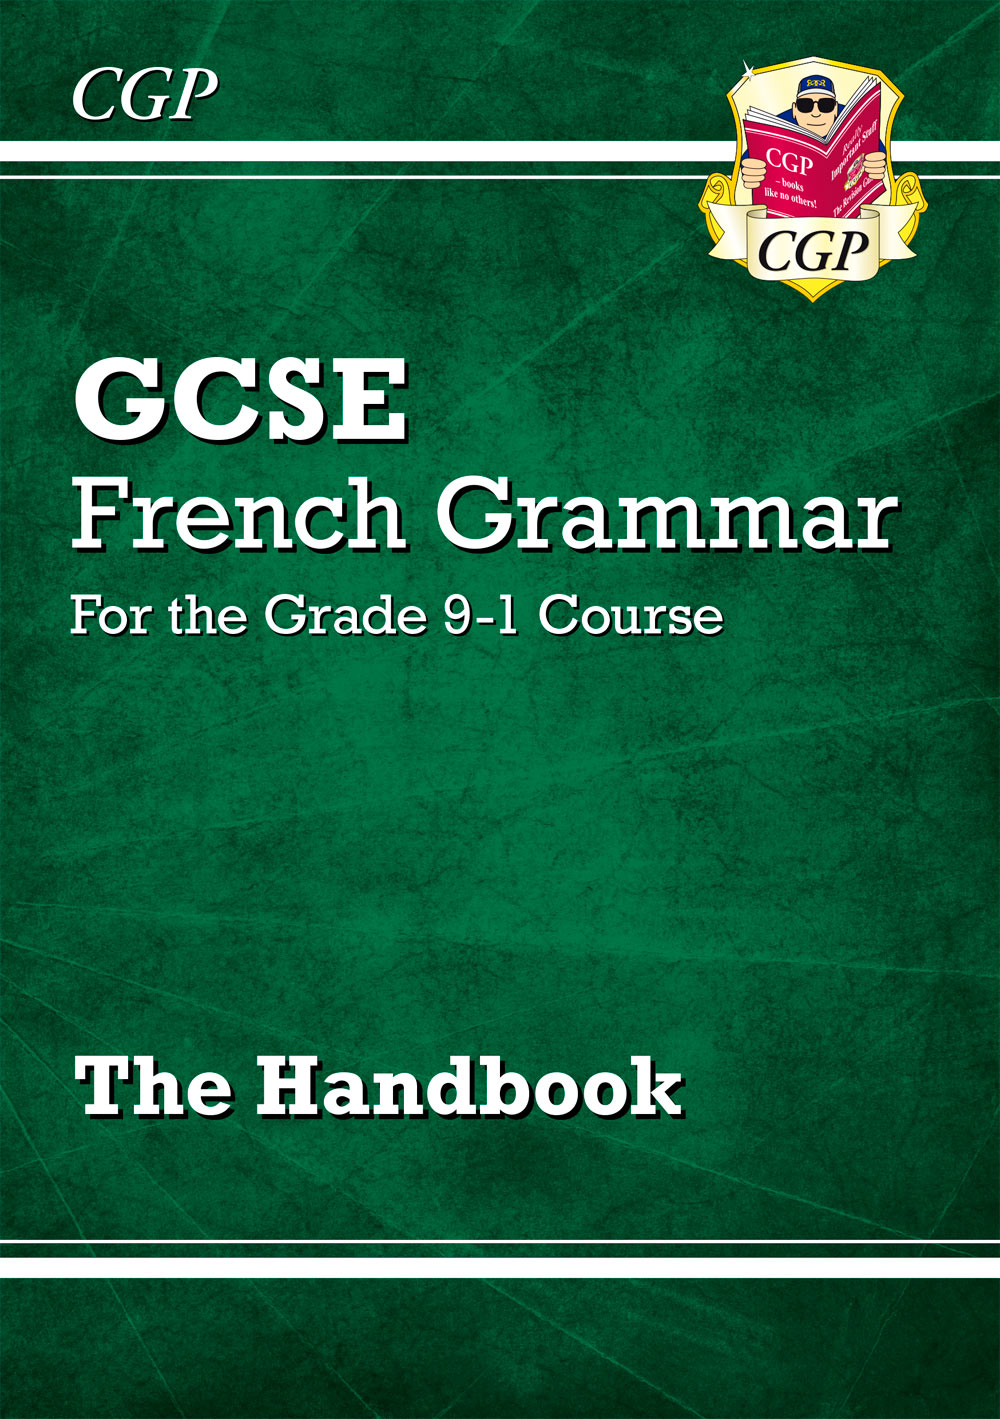 FGR42 - New GCSE French Grammar Handbook - for the Grade 9-1 Course